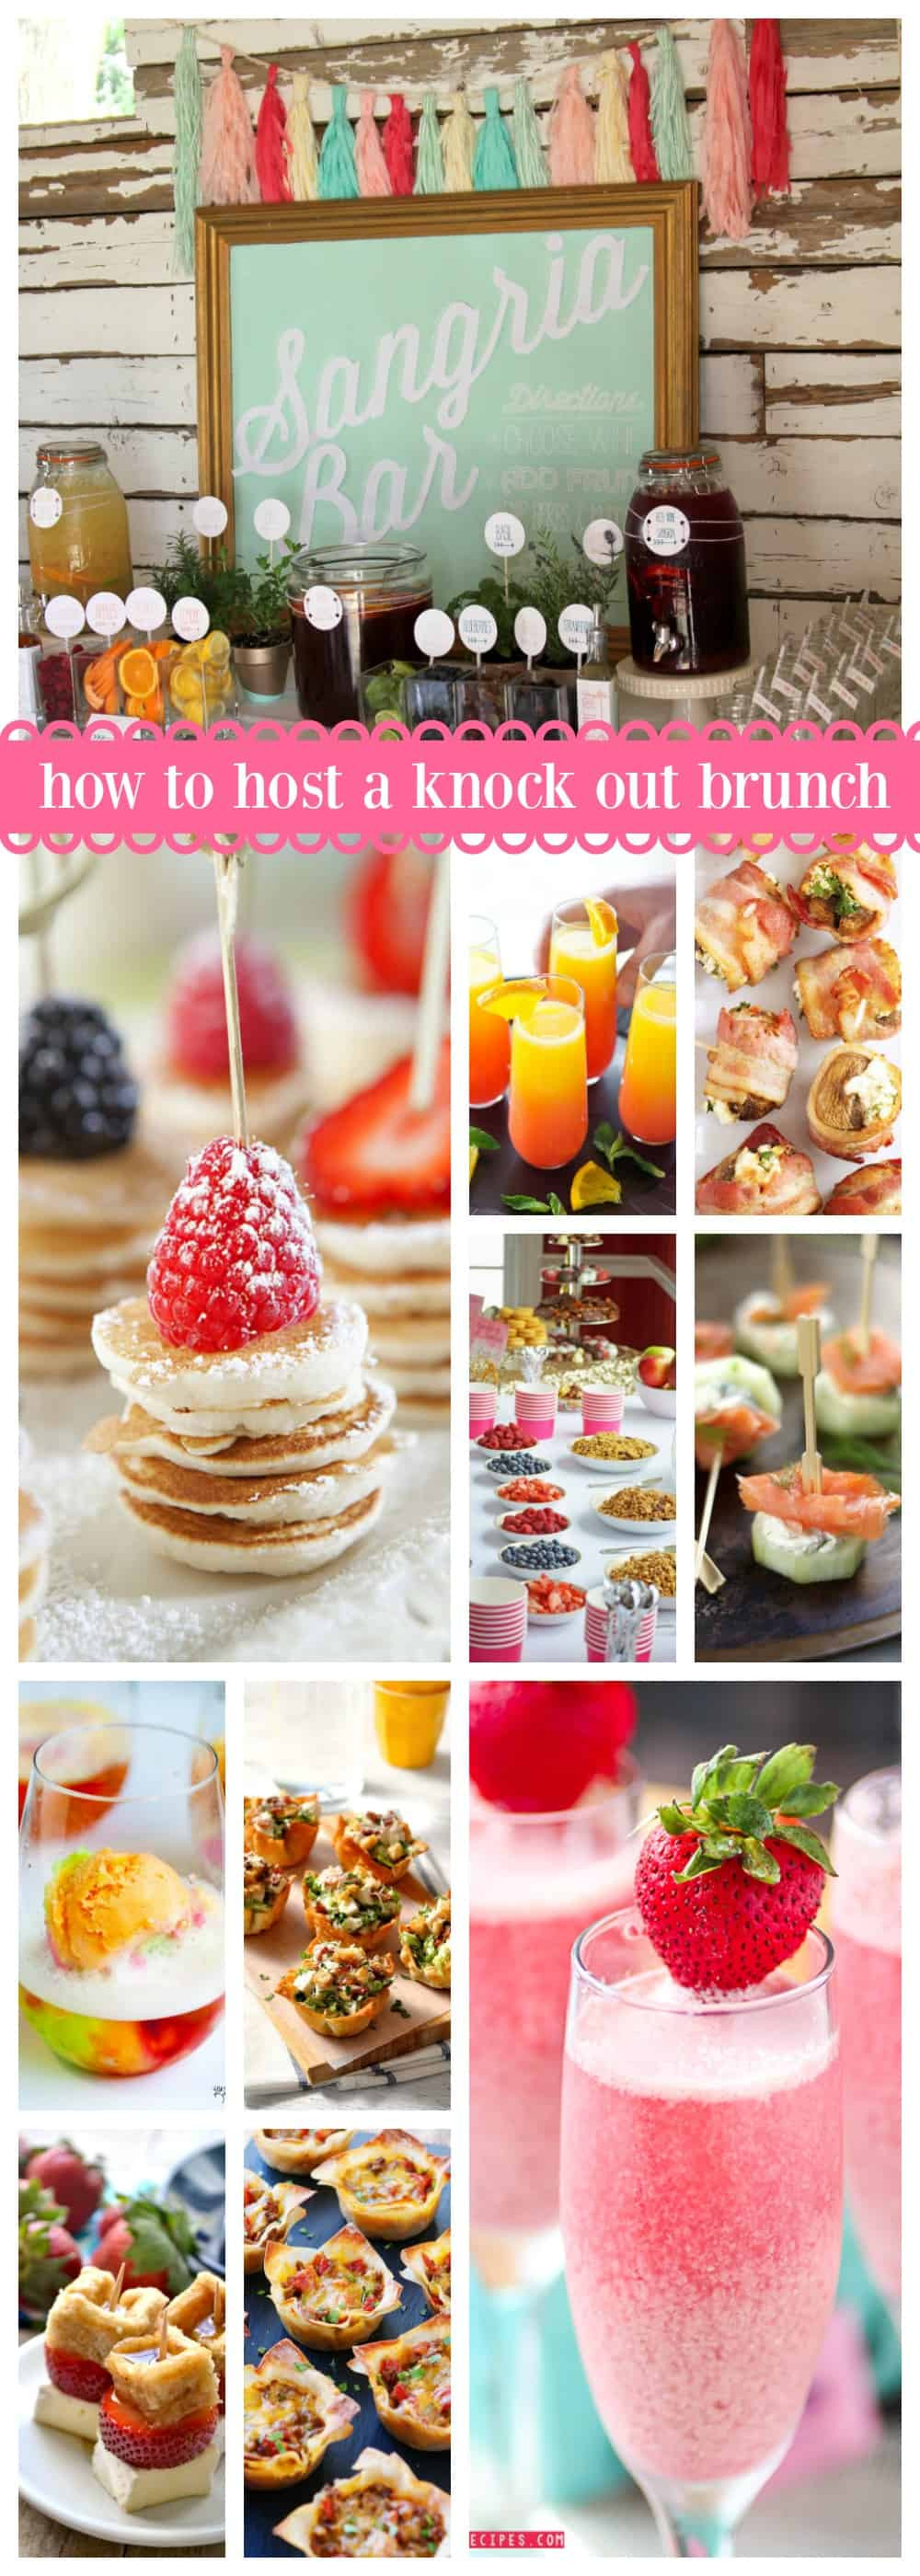 Birthday Brunch Ideas  How to Host a Knock Out Brunch Create Craft Love